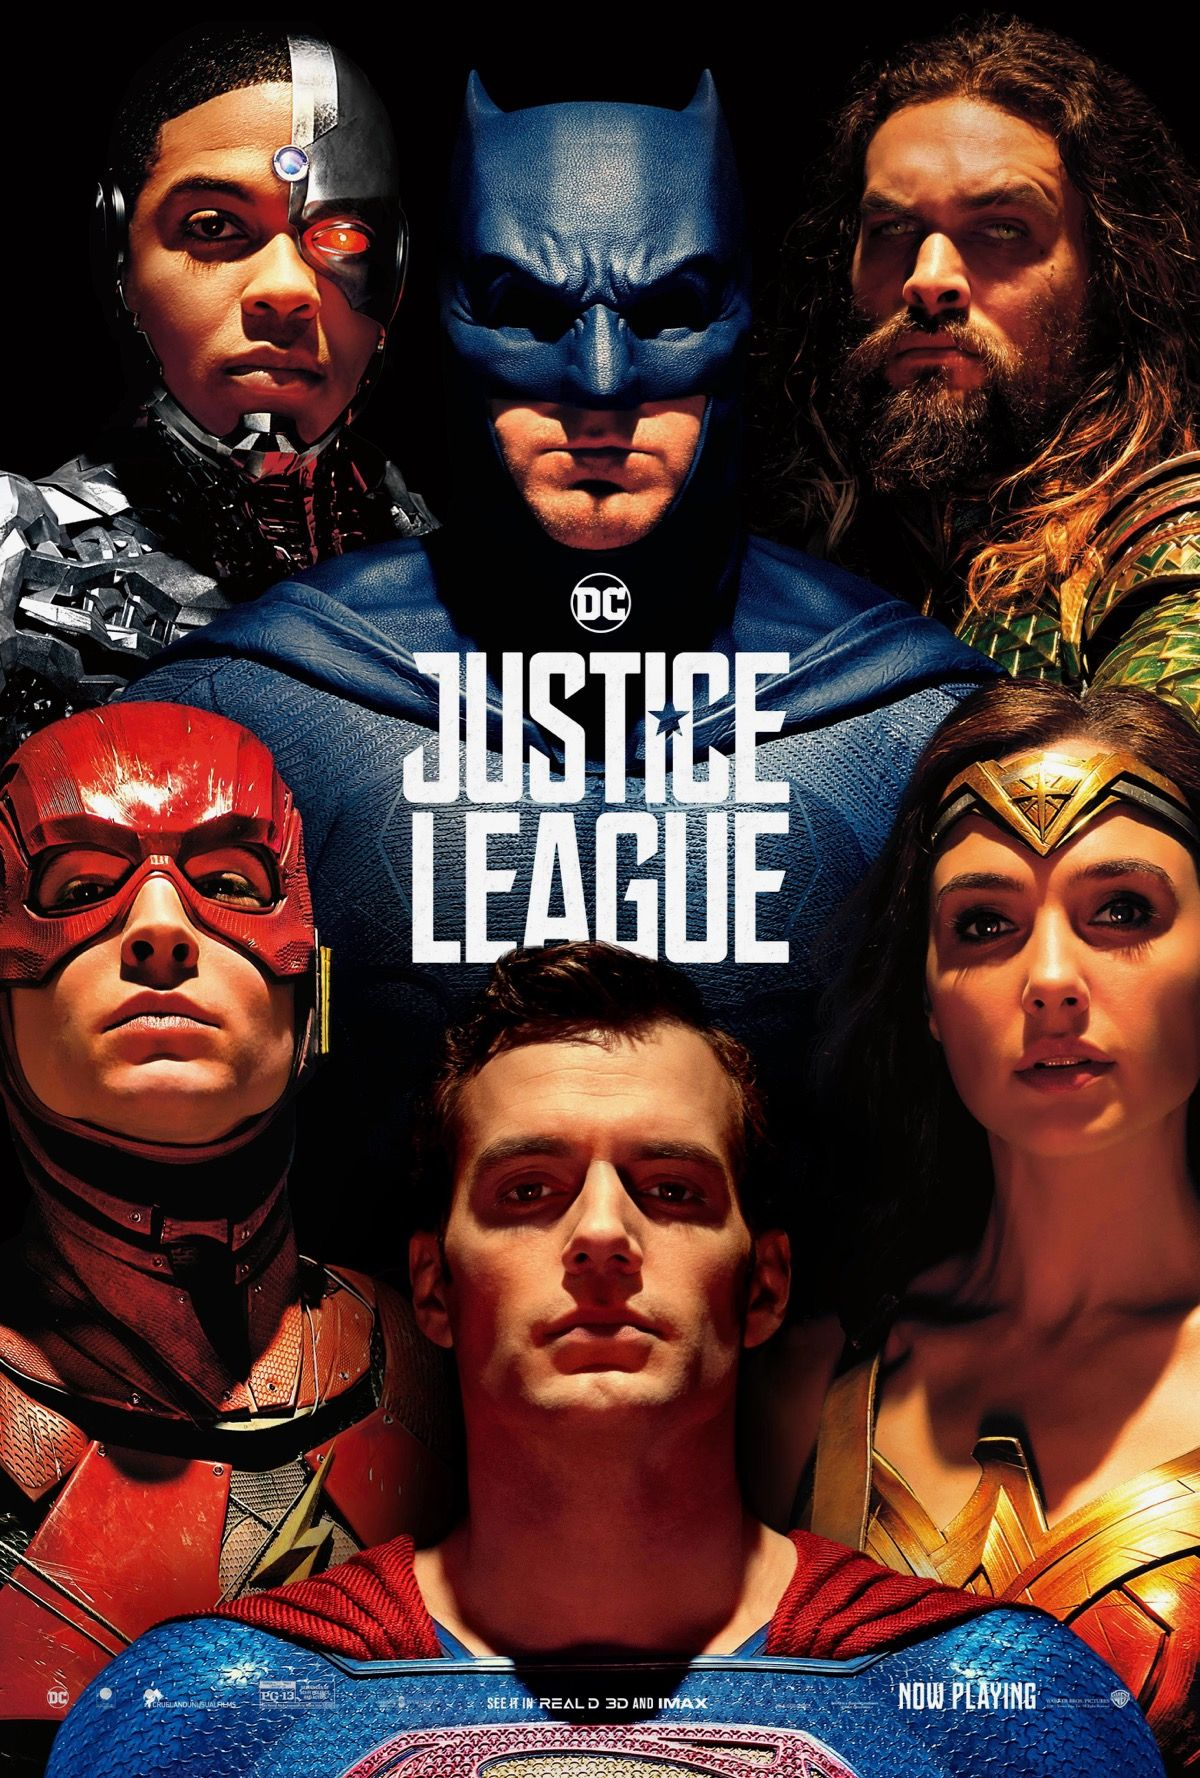 http://cdn.collider.com/wp-content/uploads/2017/11/justice-league-superman-poster.jpg